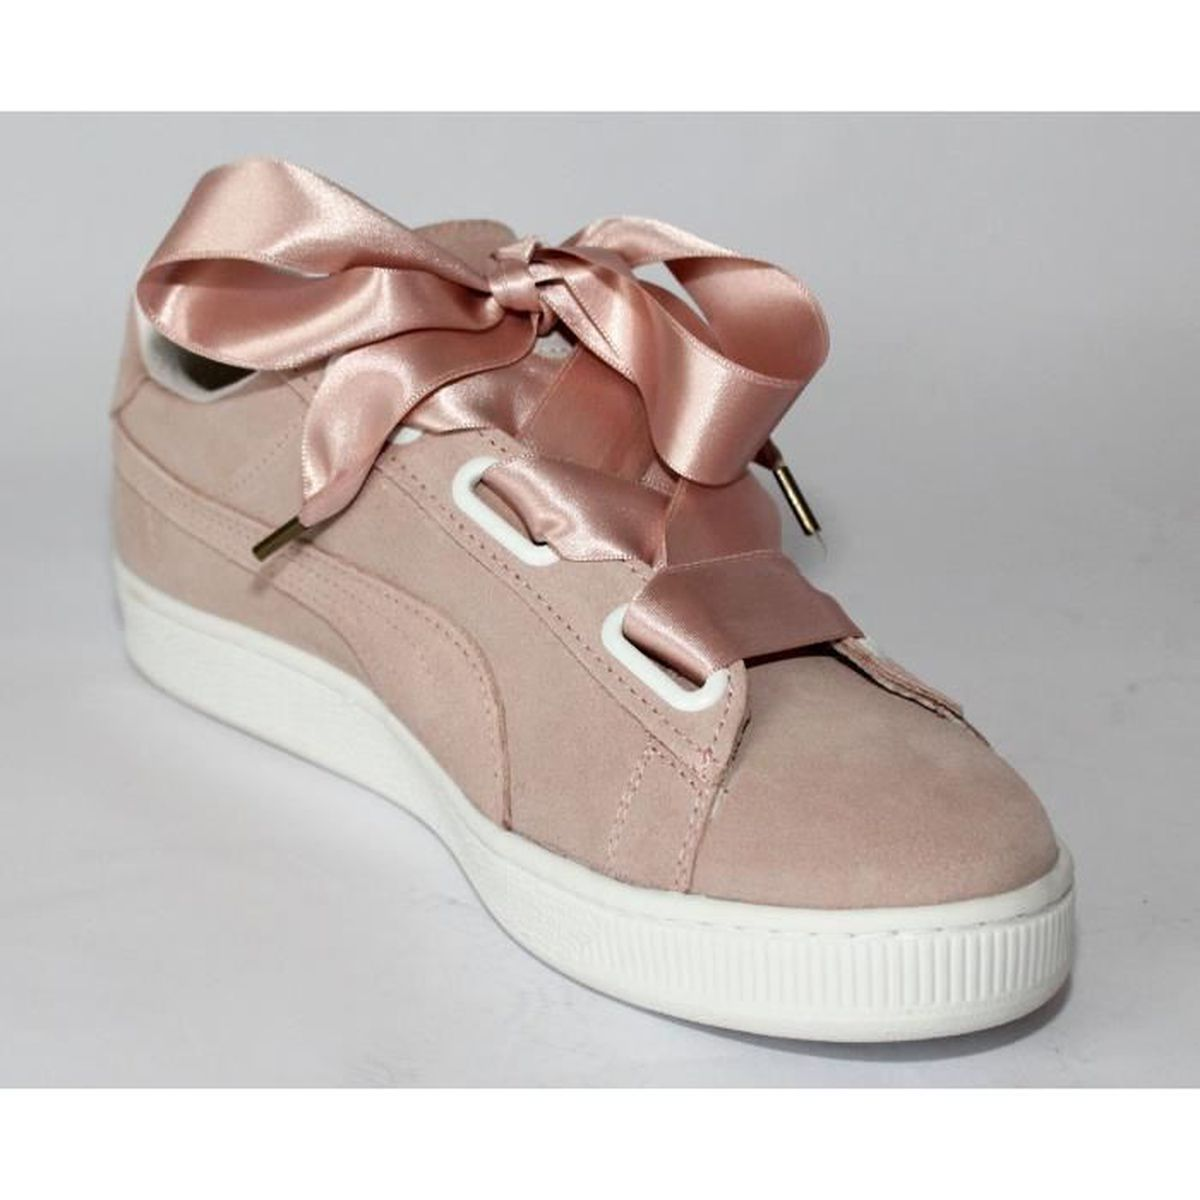 38 Vente Baskets Basket Chaussures Heart Puma Rose T Achat vnmN0w8O